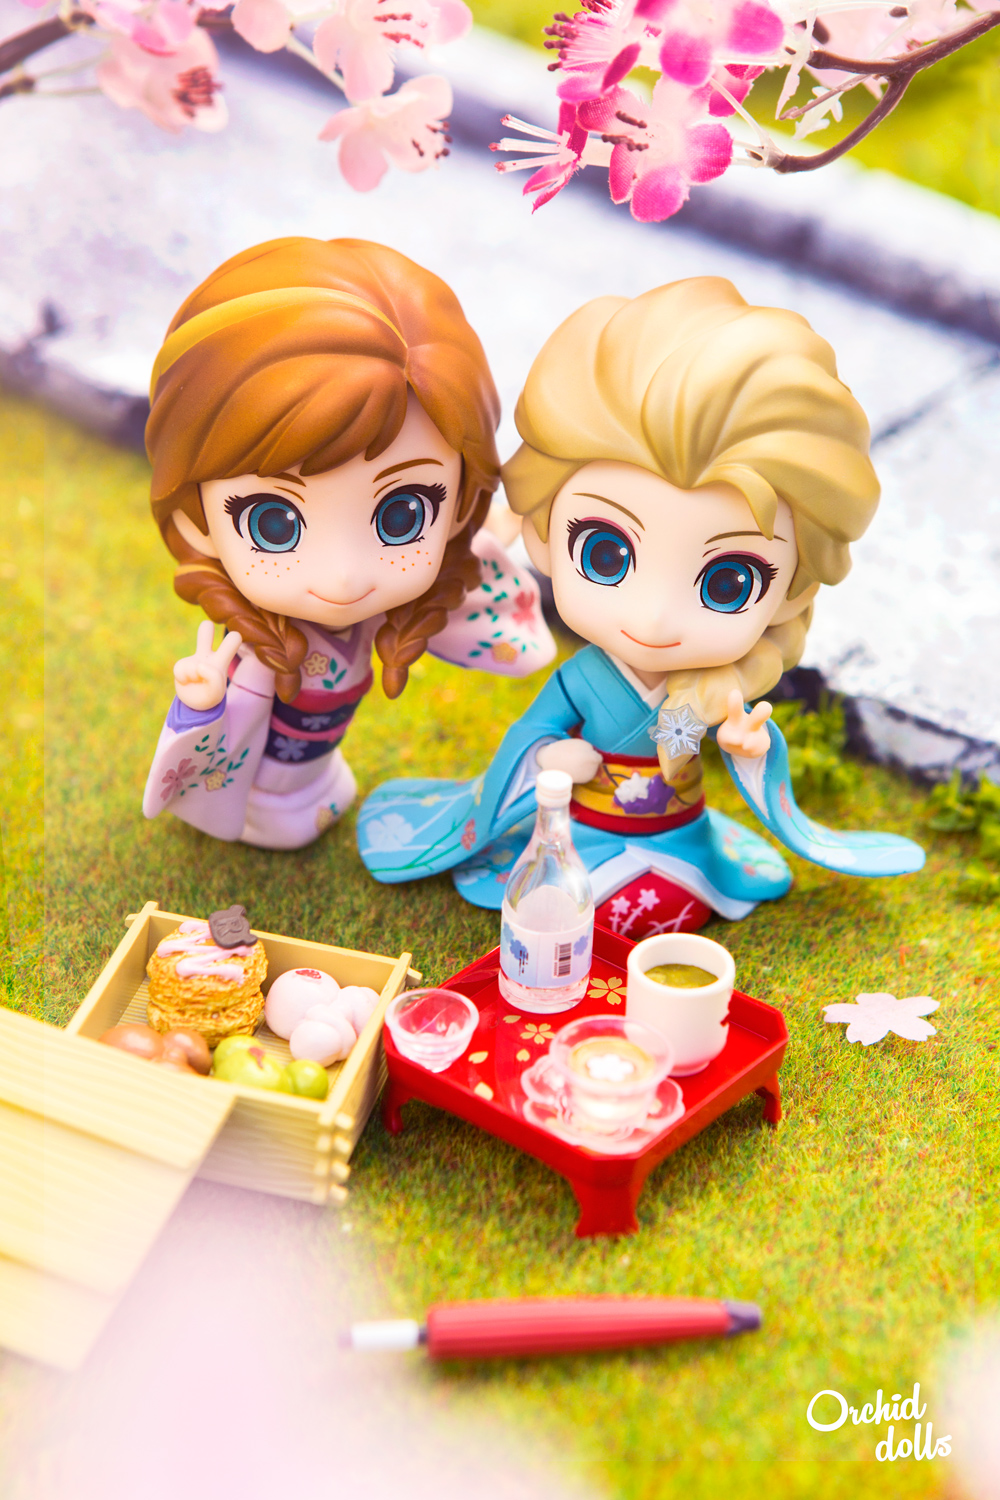 Elsa and Anna Nendoroid Frozen in Hanami wearing Kimono